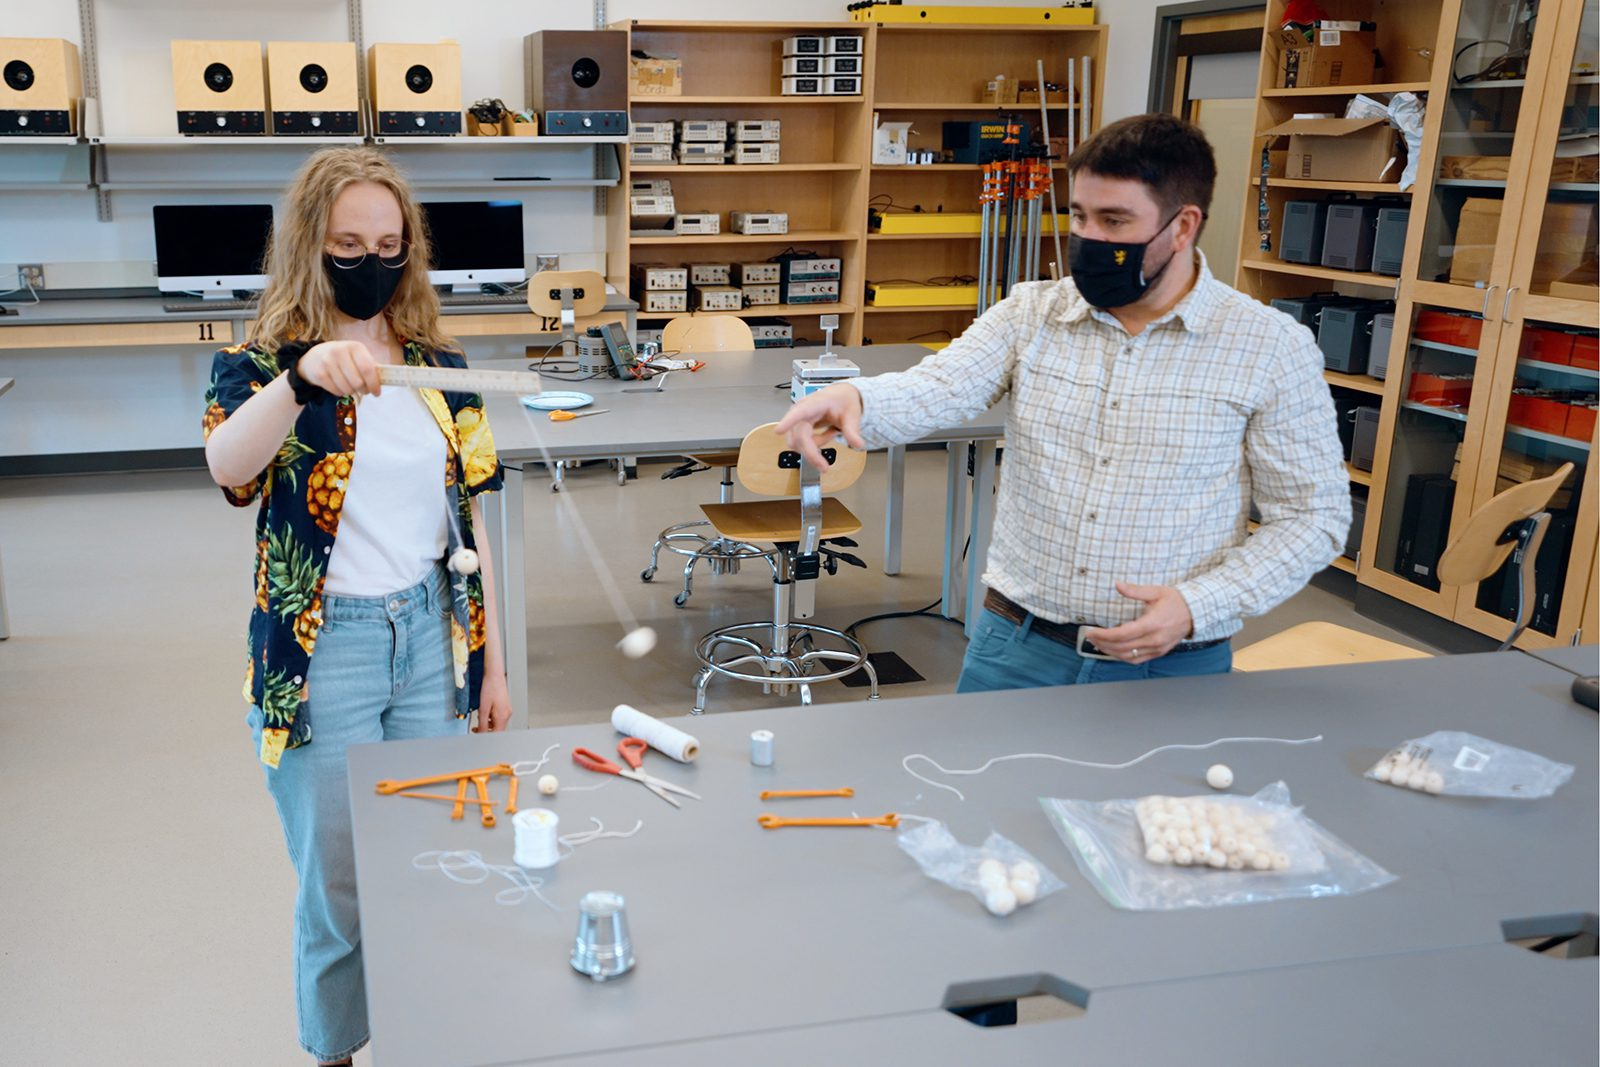 Elizabeth Leeser '23 (left) tests one of the science kits with the guidance of physics faculty member Eric Hazlett.